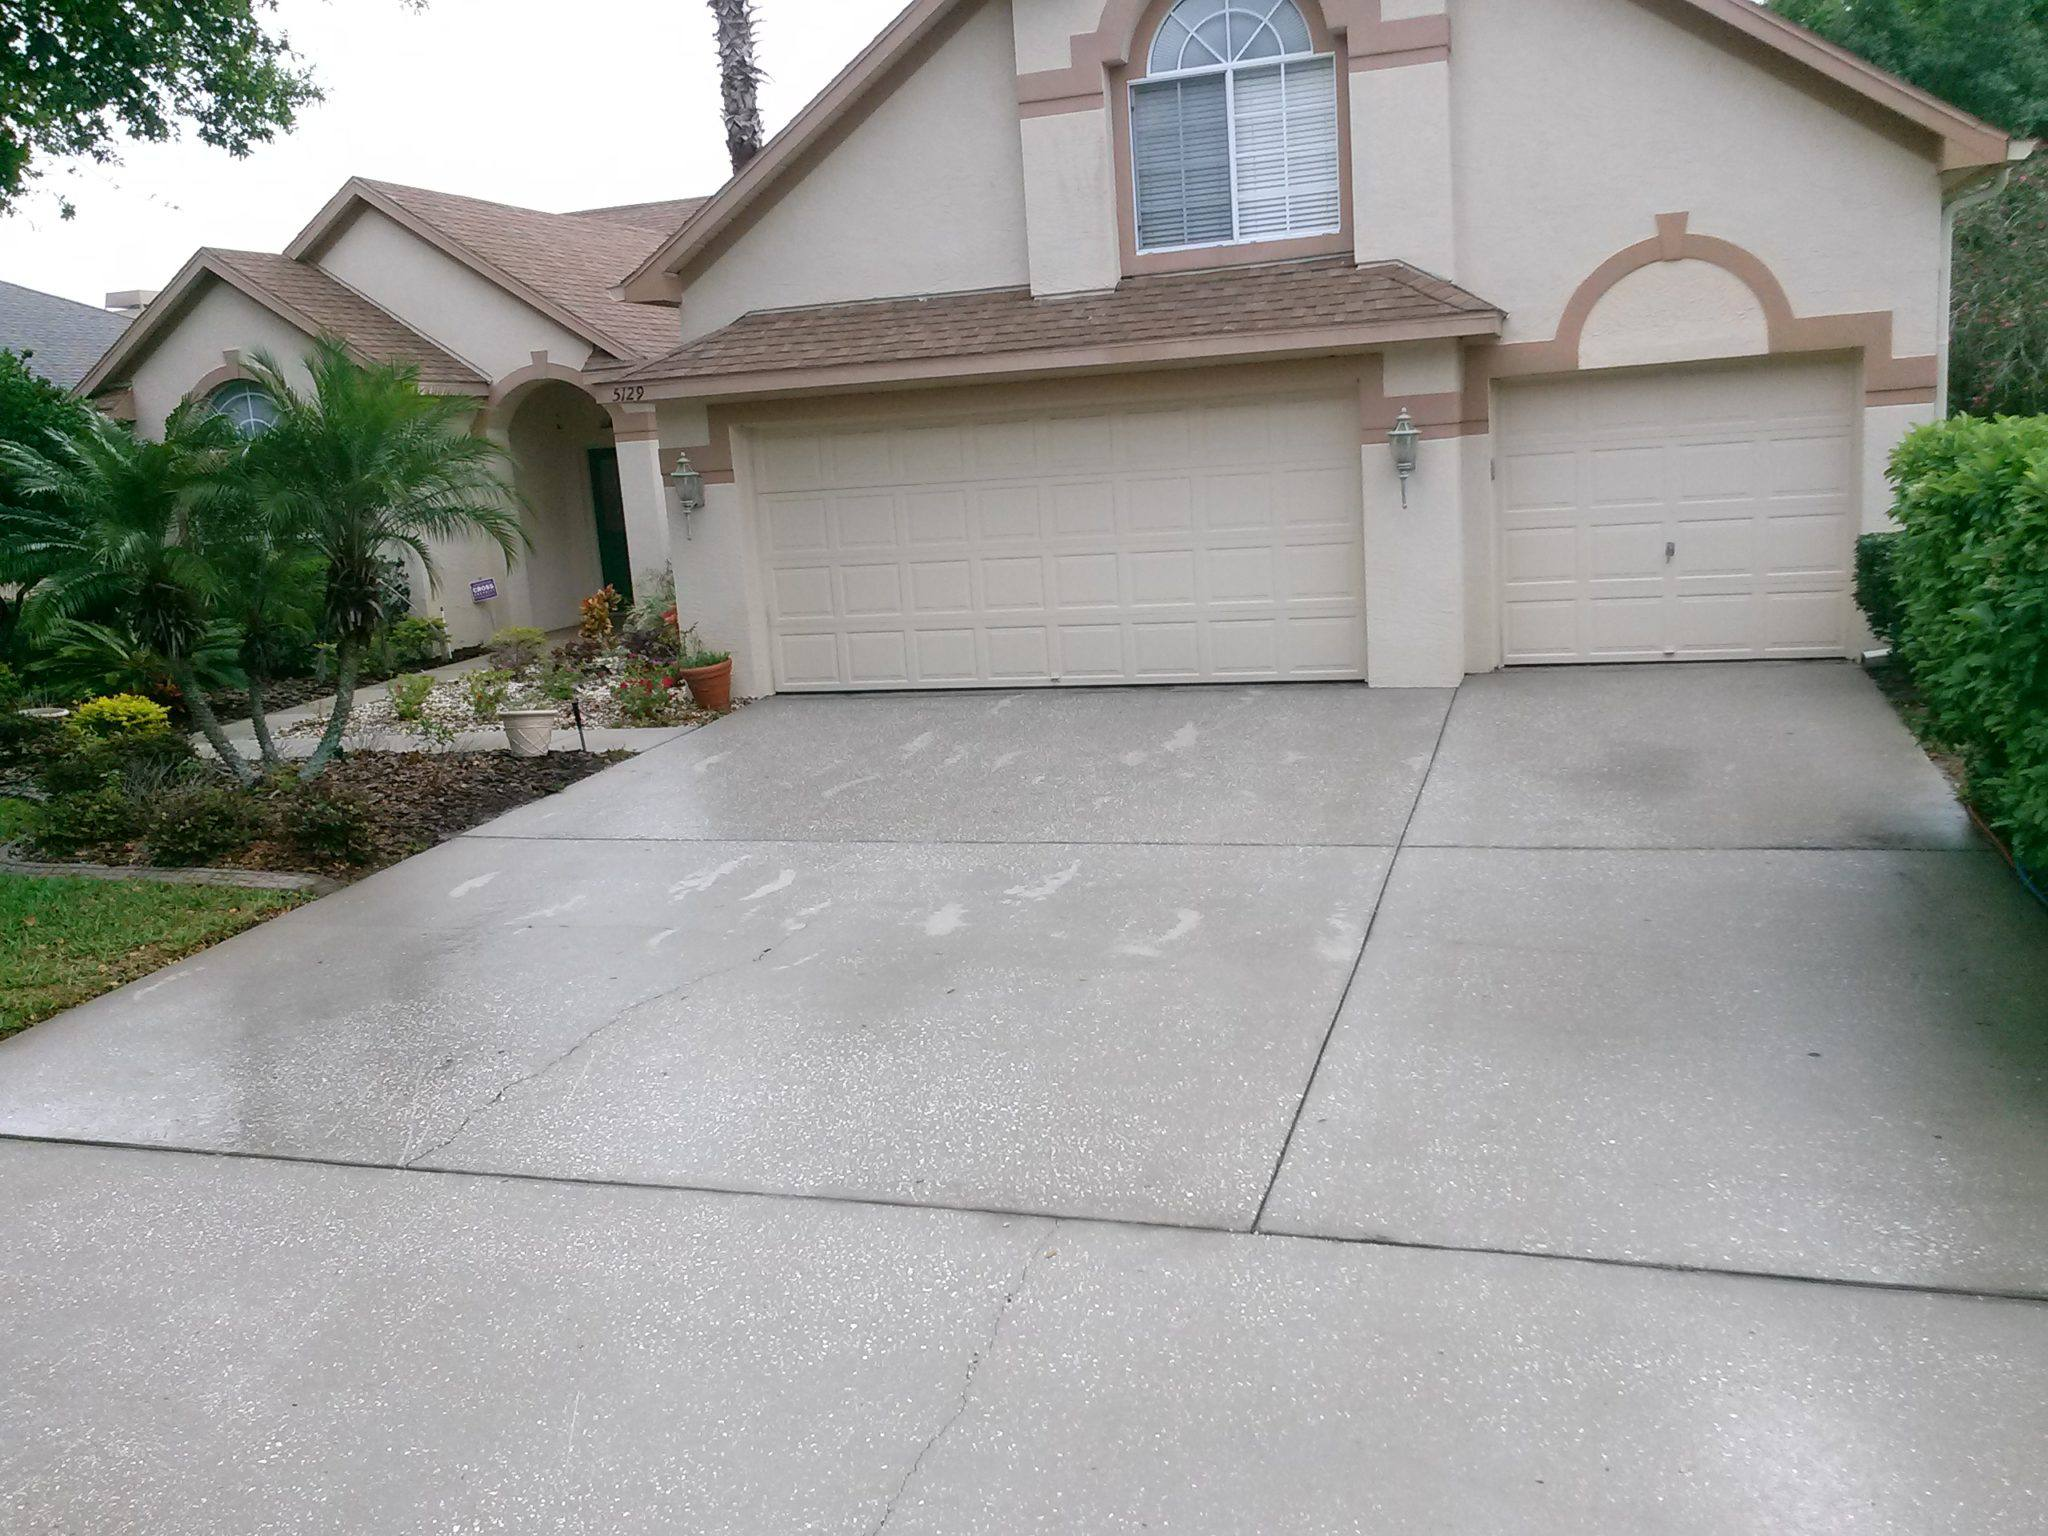 Driveway Pressure Washed Palm Harbor After Pressure